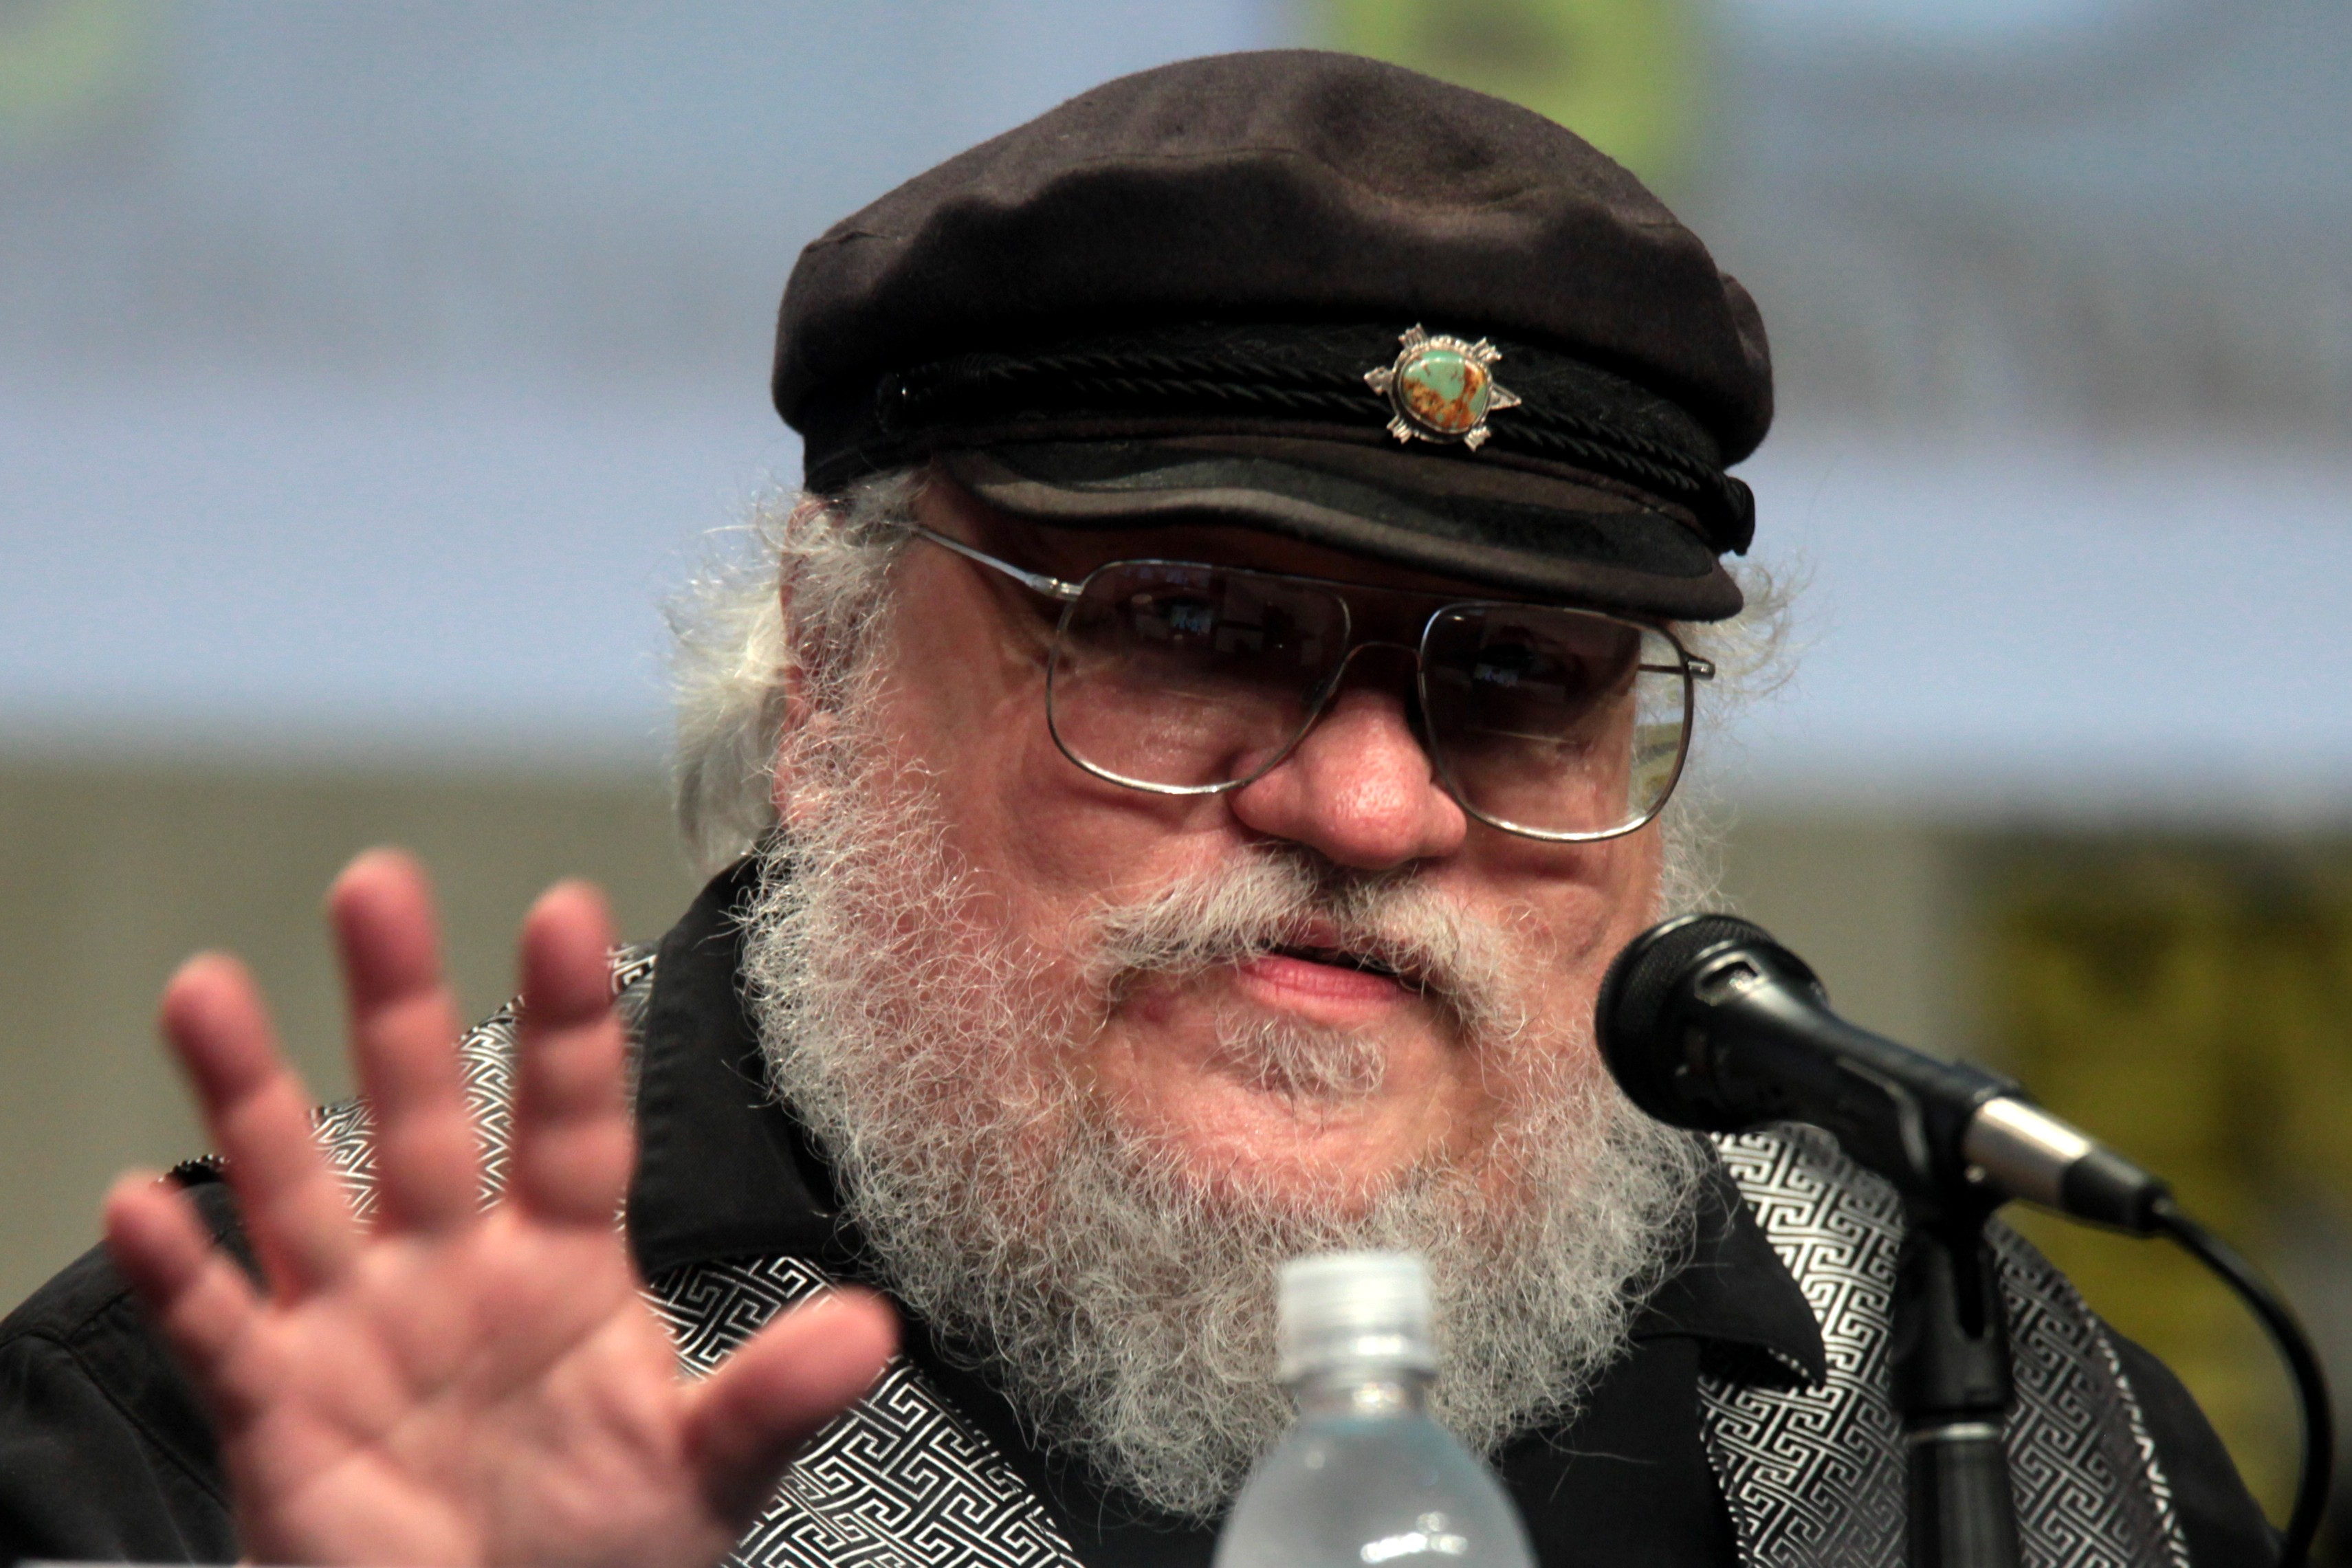 George R. R. Martin na Comic Con de 2014, em San Diego (Foto: Gage Skidmore | flickr | creative commons)